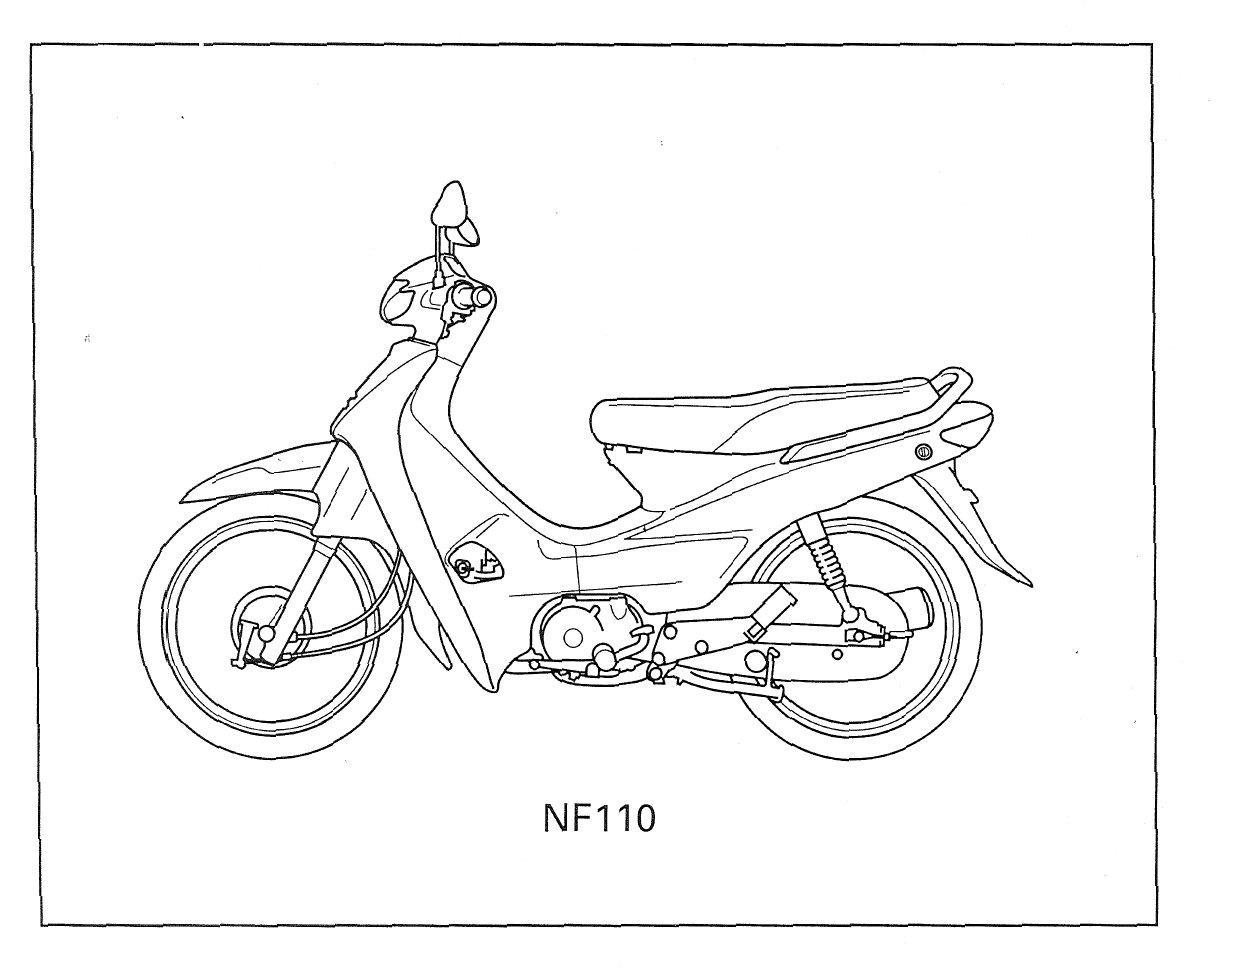 Parts list for Honda NF110 NICE (Malaysian)